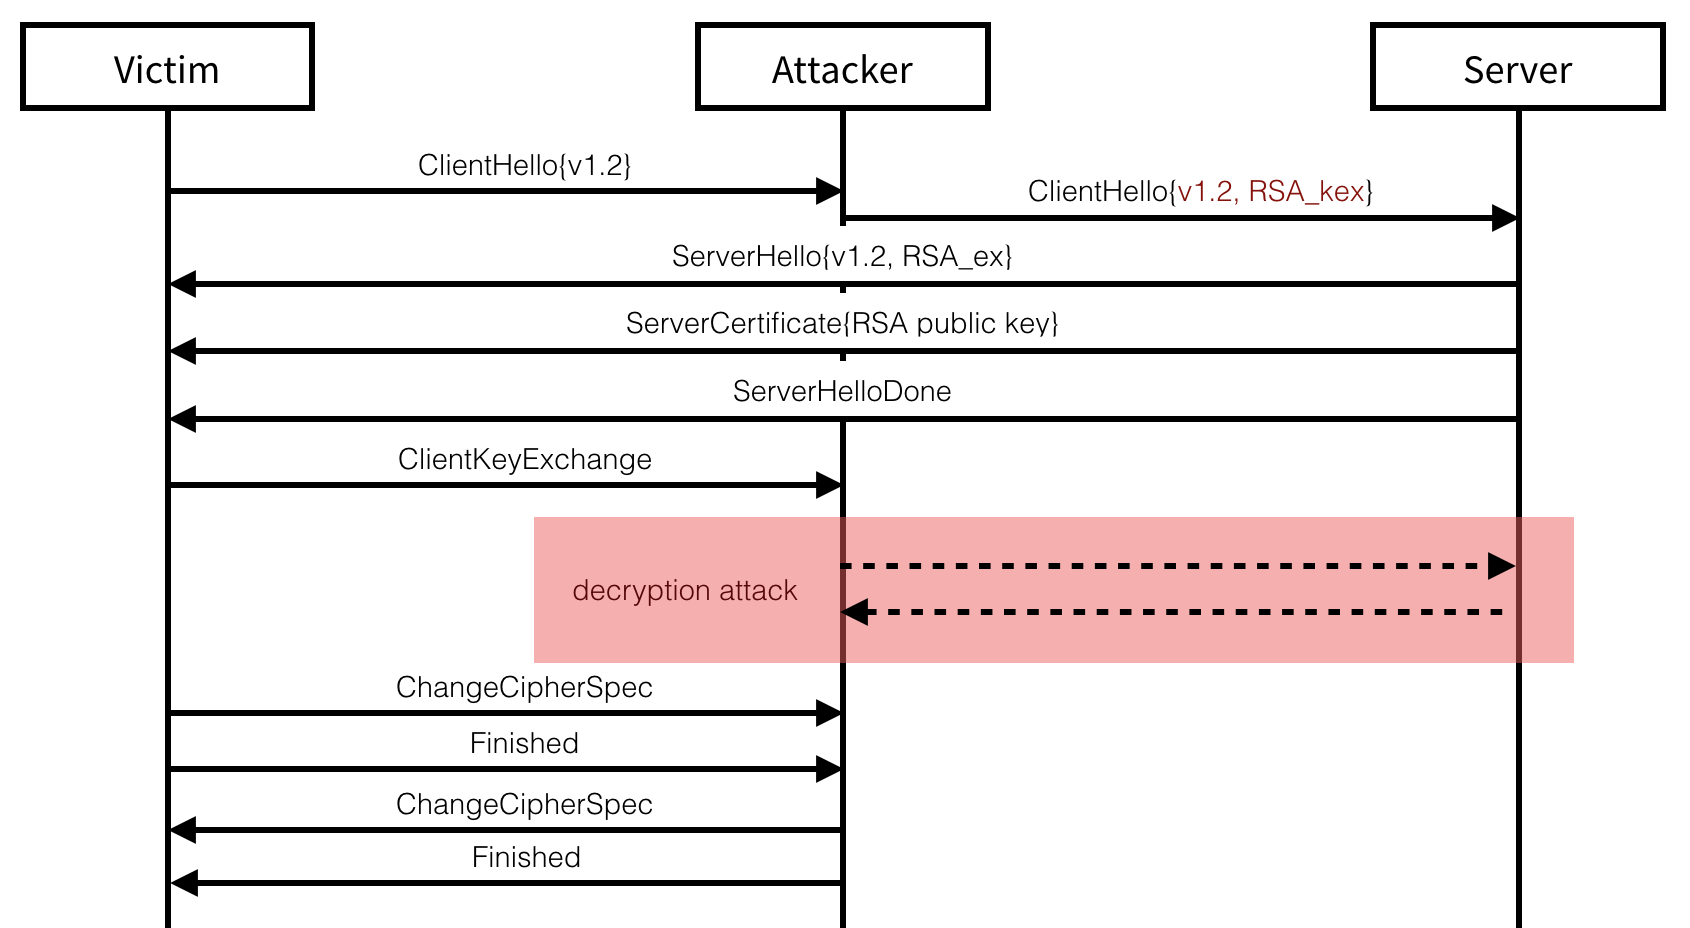 The attack on TLS 1.2 modifies the client's first packet to force an RSA key exchange.